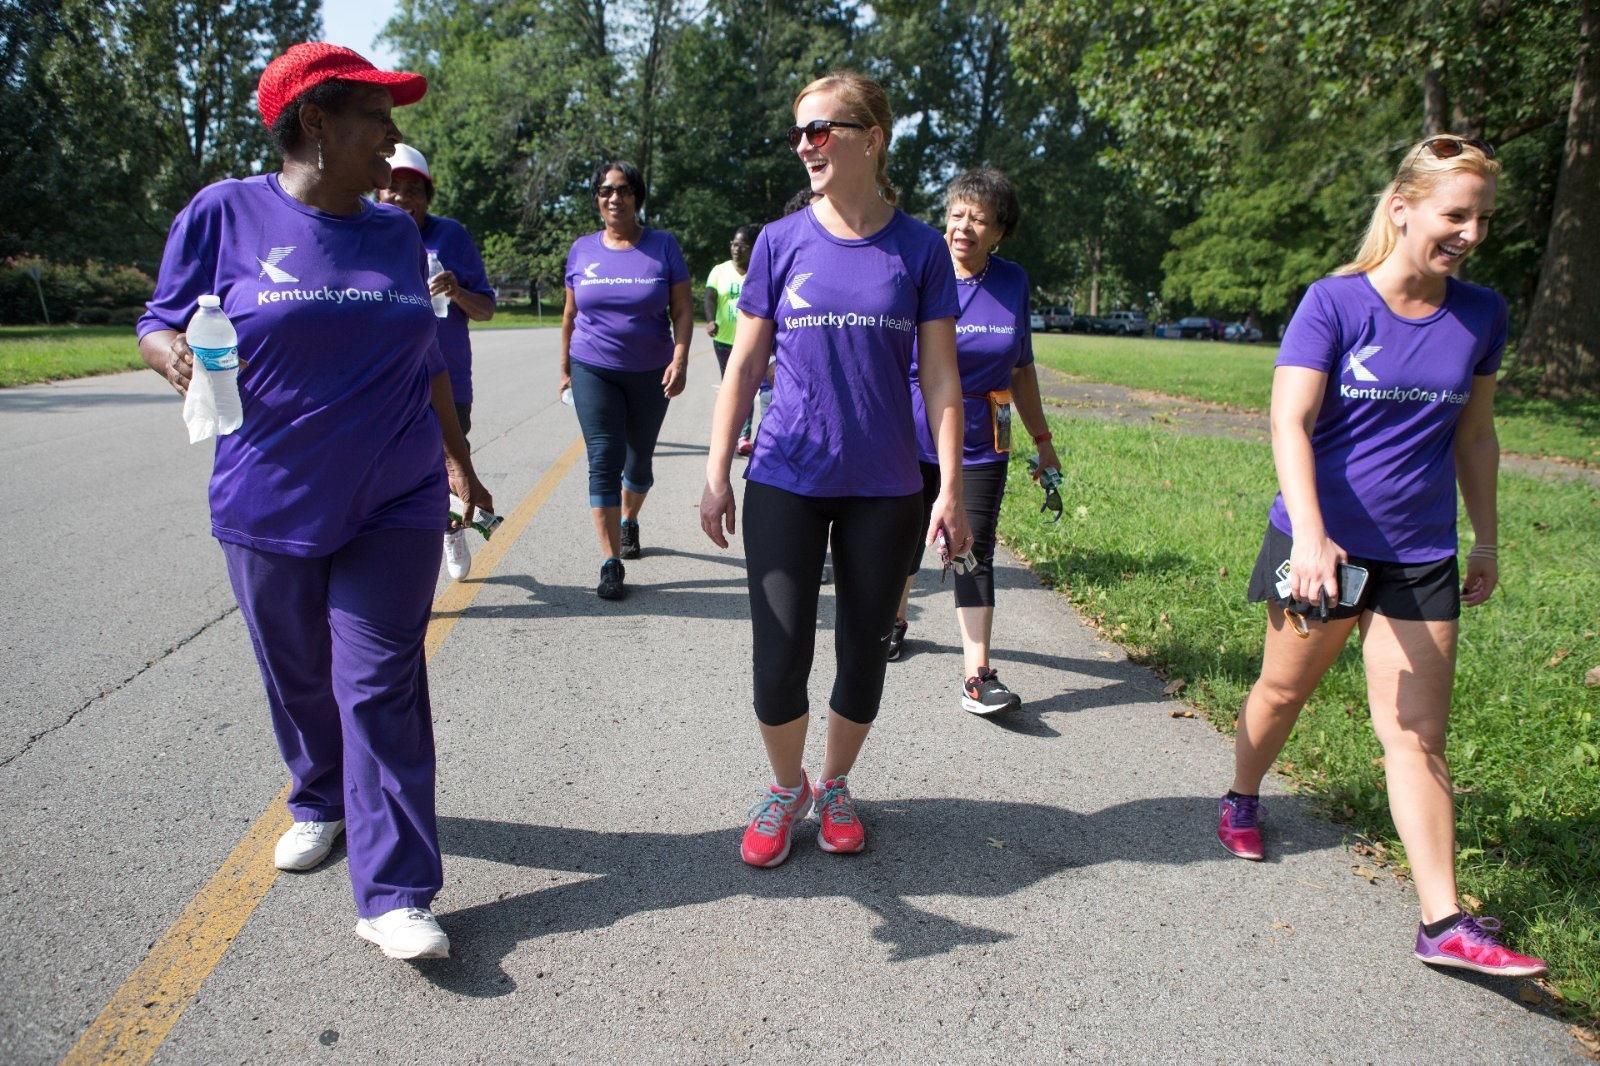 Participants talking during a charity walk.